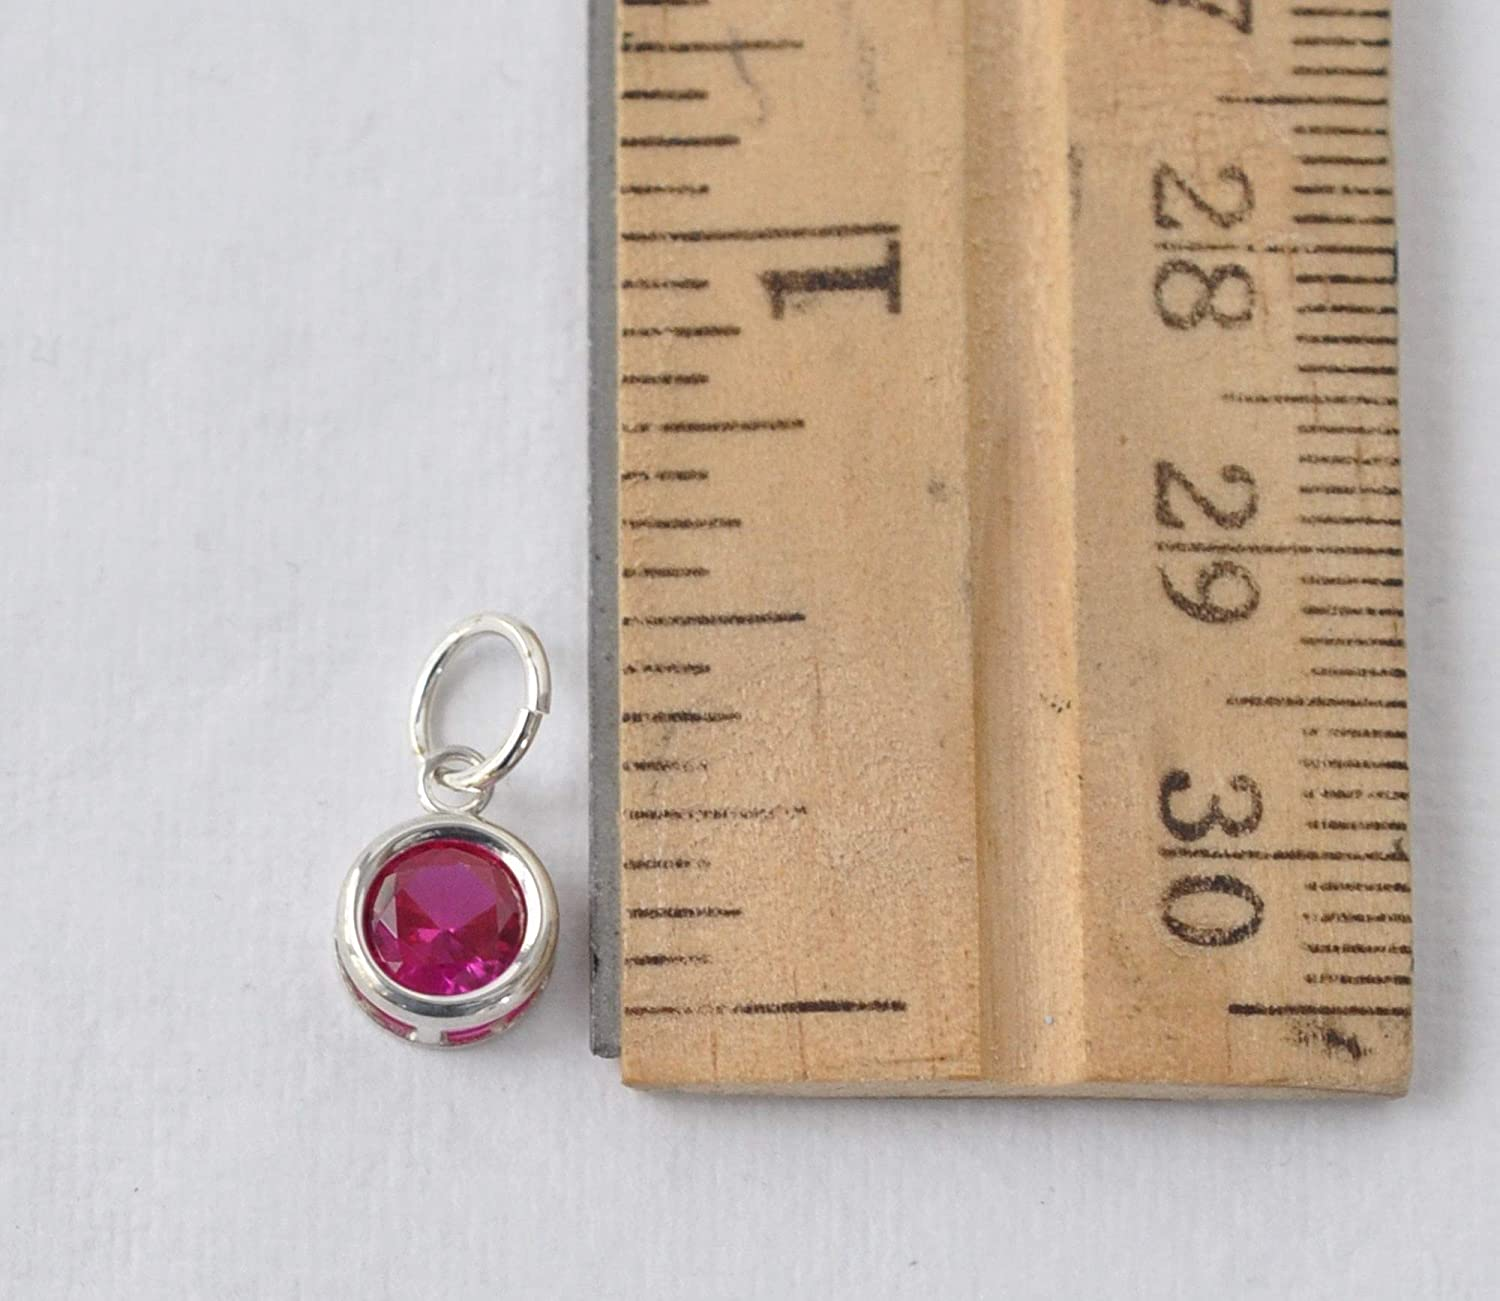 Lab Created Ruby Small July Birthstone Charm Pendant in Sterling Silver DIY Jewelry Making Birthday Gifts for Women